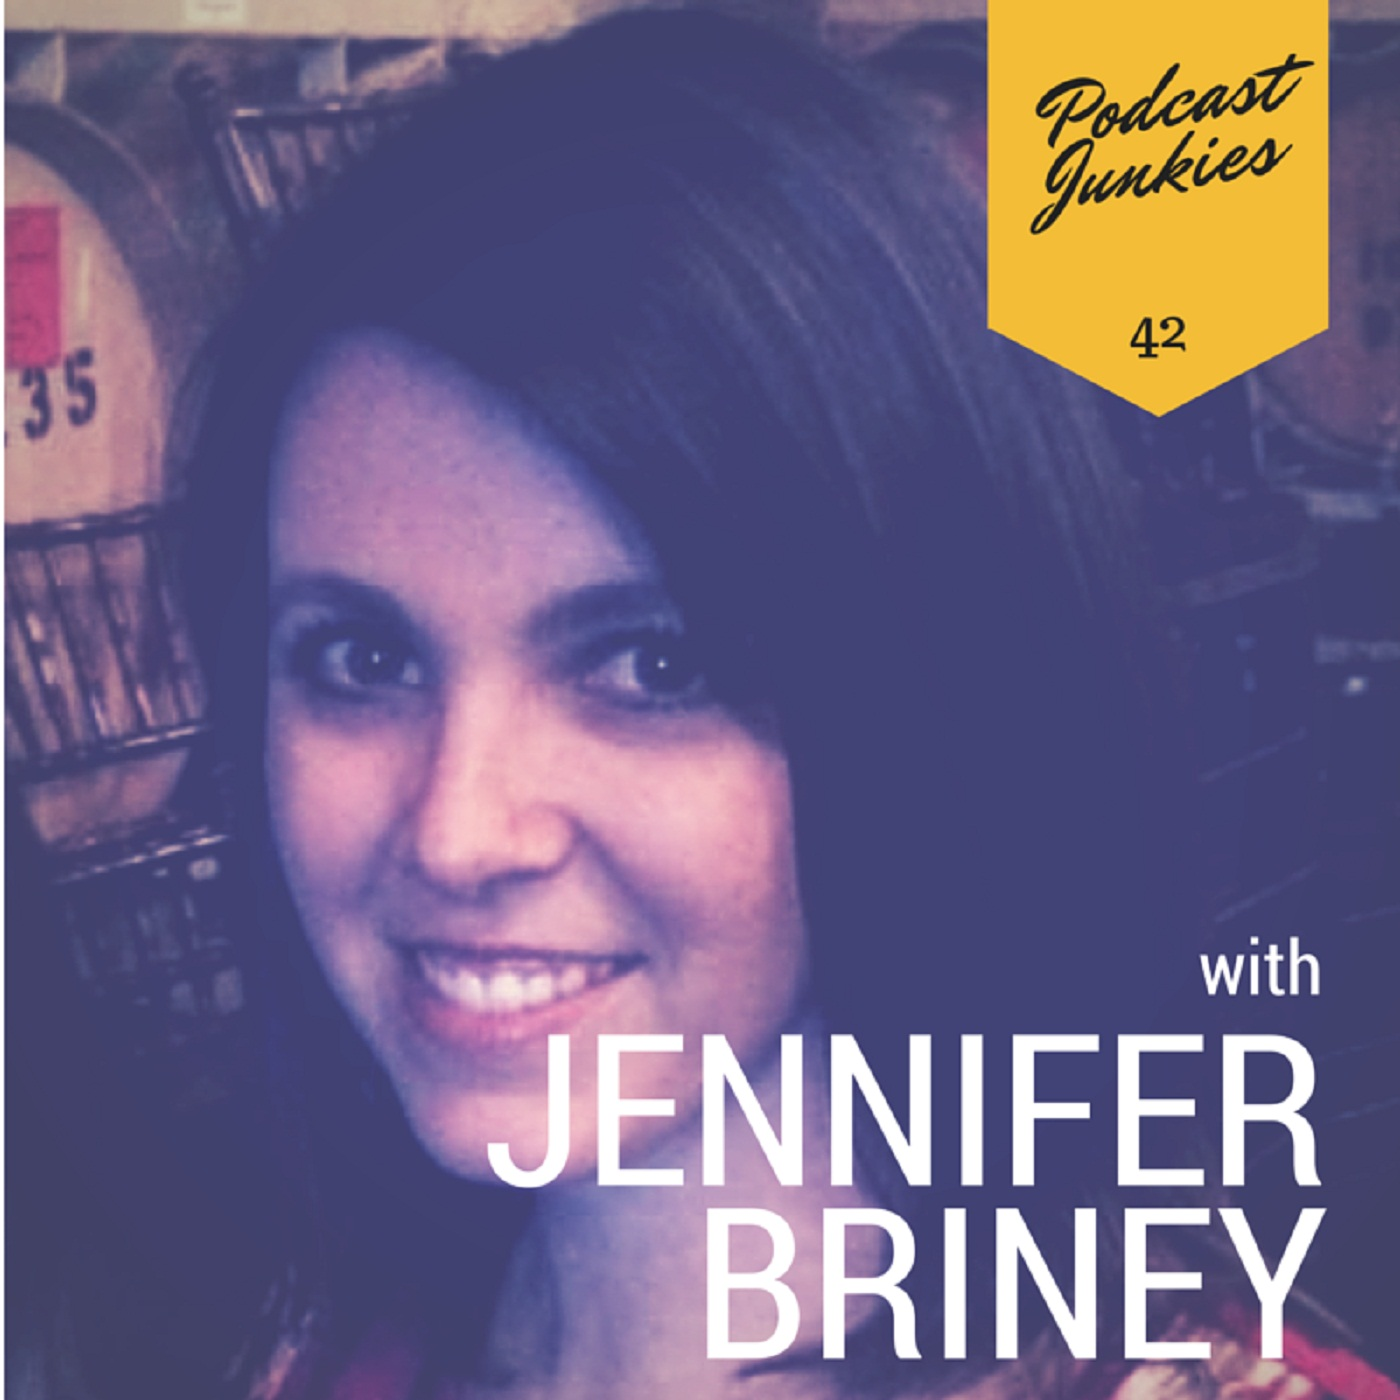 042 Jennifer Briney | I Actually Enjoy Reading the Bills, Which Means I'm a Giant Nerd